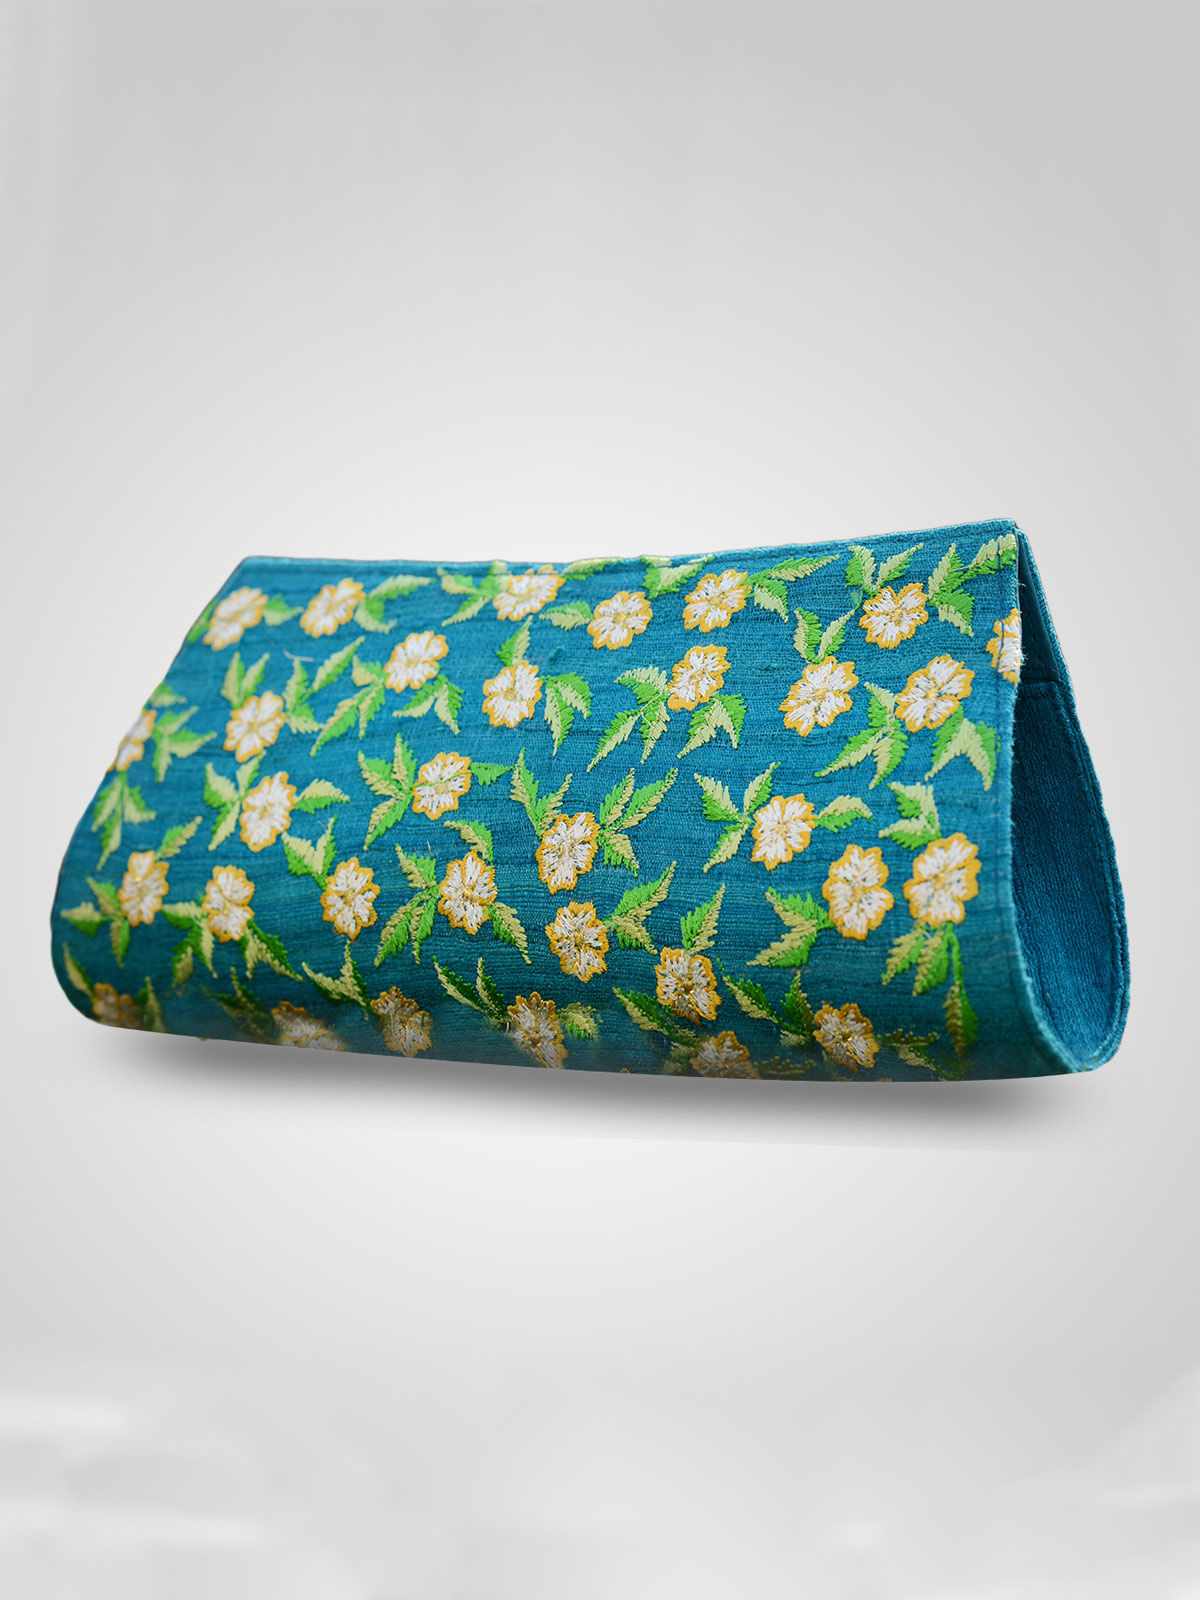 Embroidered on silk floral print clutch handbag for Girls & Women